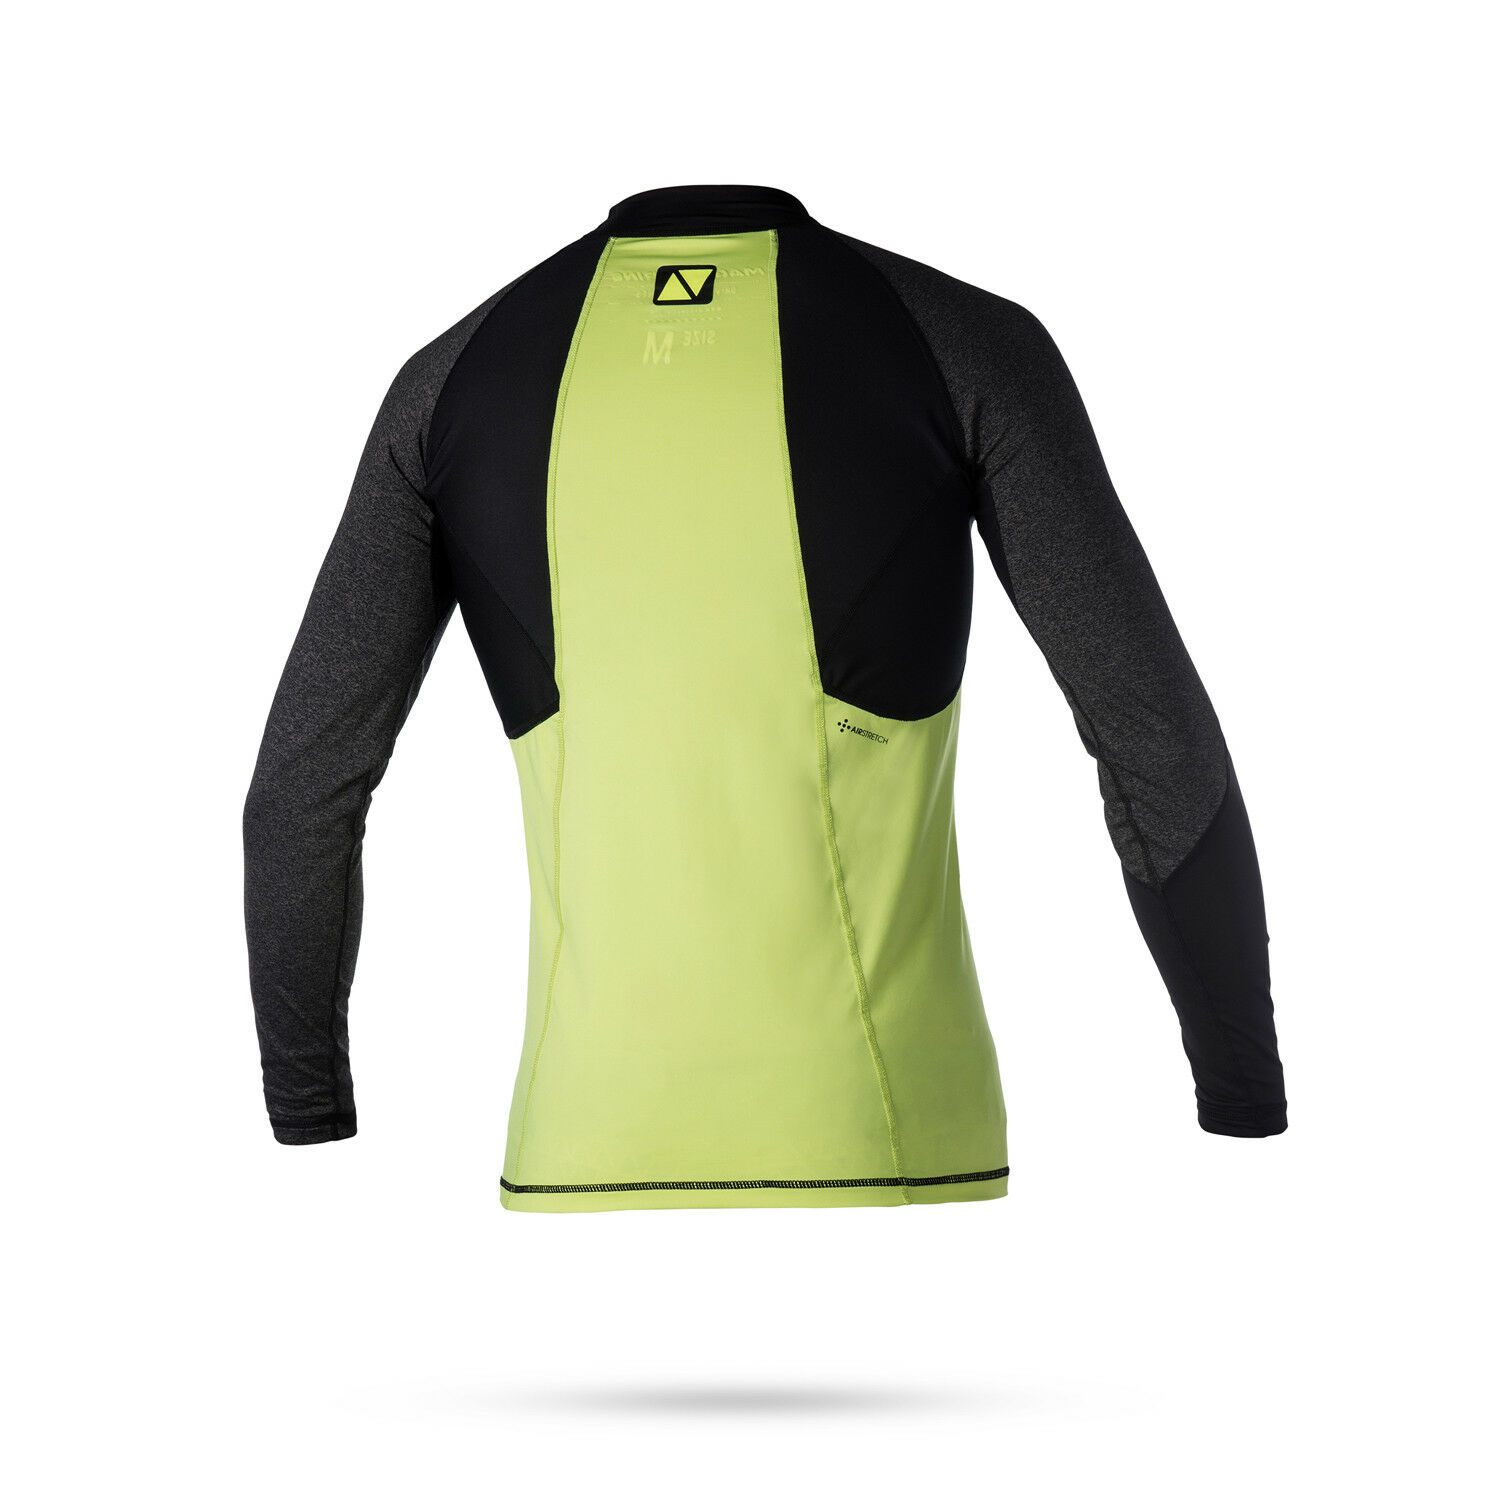 Magic Magic Magic Marine Energie Langarm Rashvest 2017 - Flash-Gelb 8b47ed